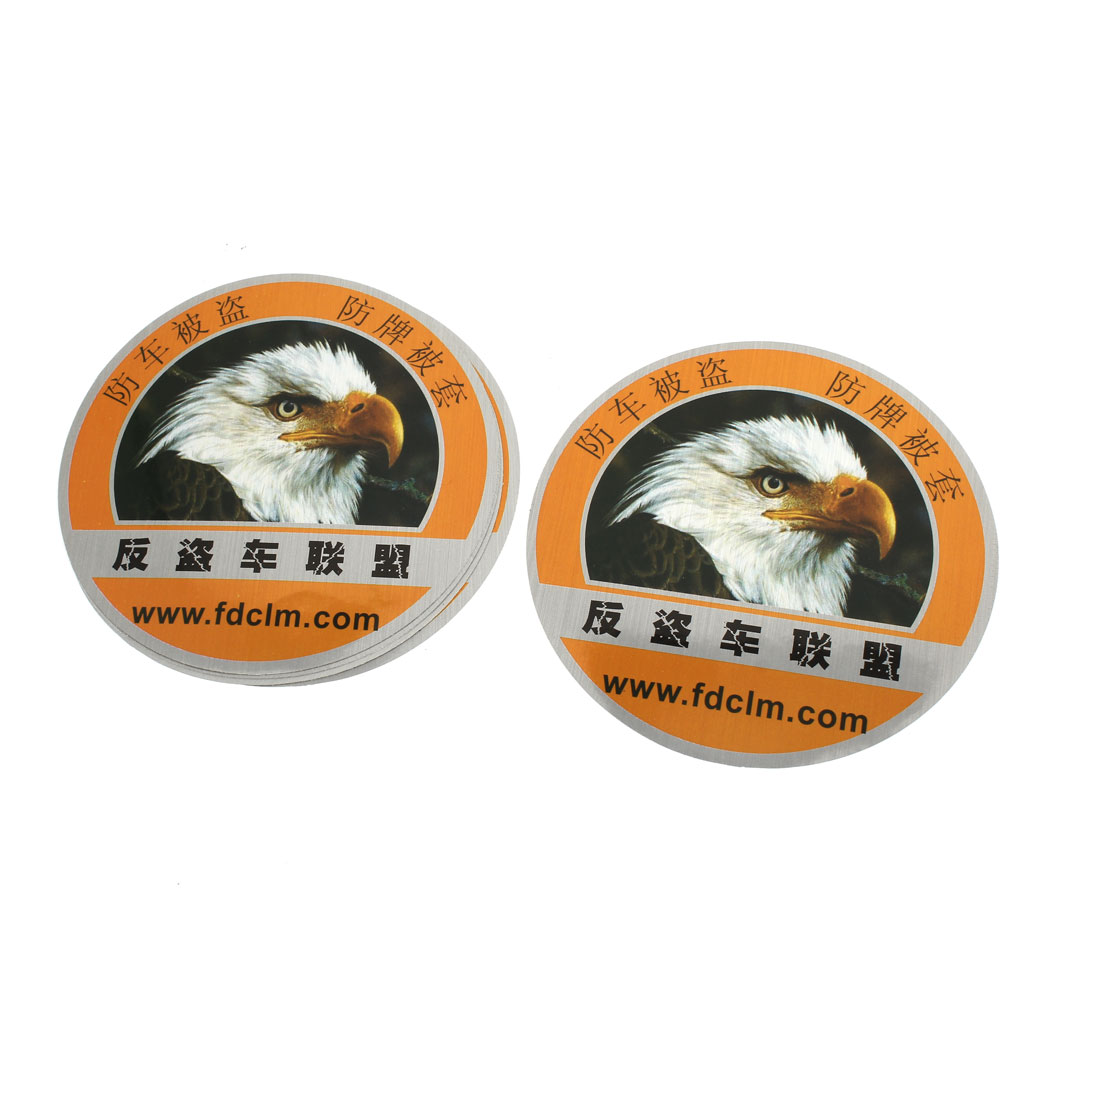 5 Pcs Eagle Pattern Design Round Shaped Reflective Sticker for Auto Car